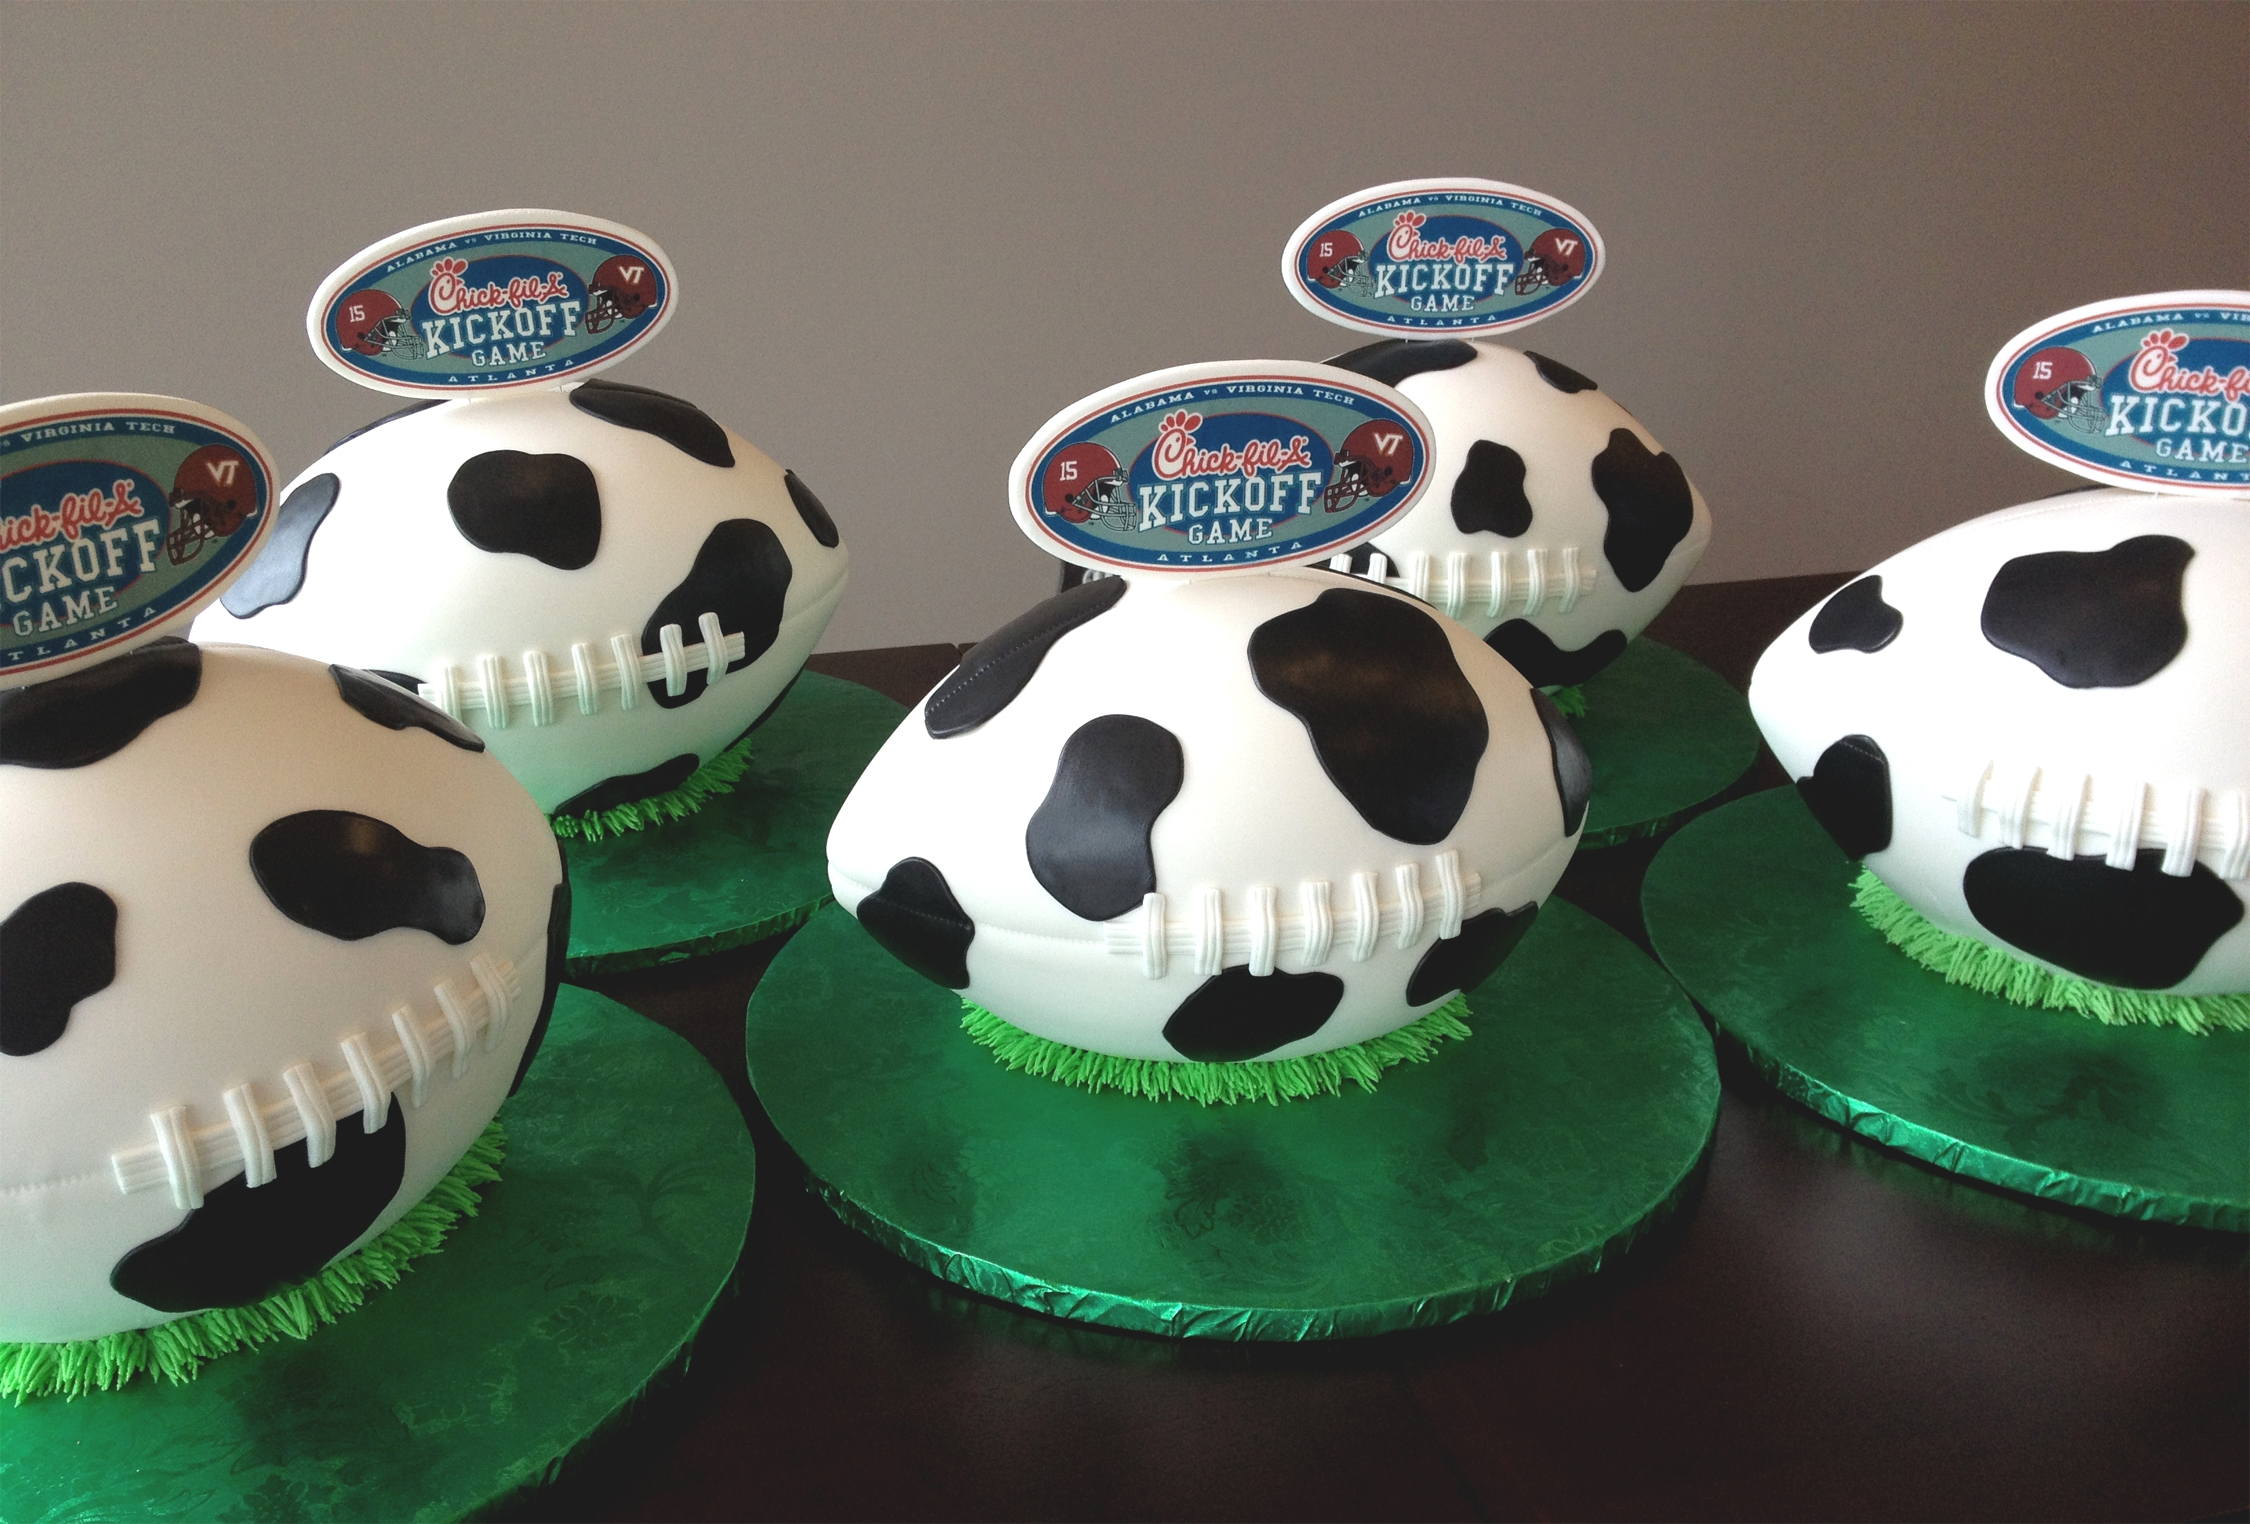 Chick Fil A Cow Spotted Football Cakes For Kickoff Game Chick-fil-A cow spotted football cakes for Kickoff game.